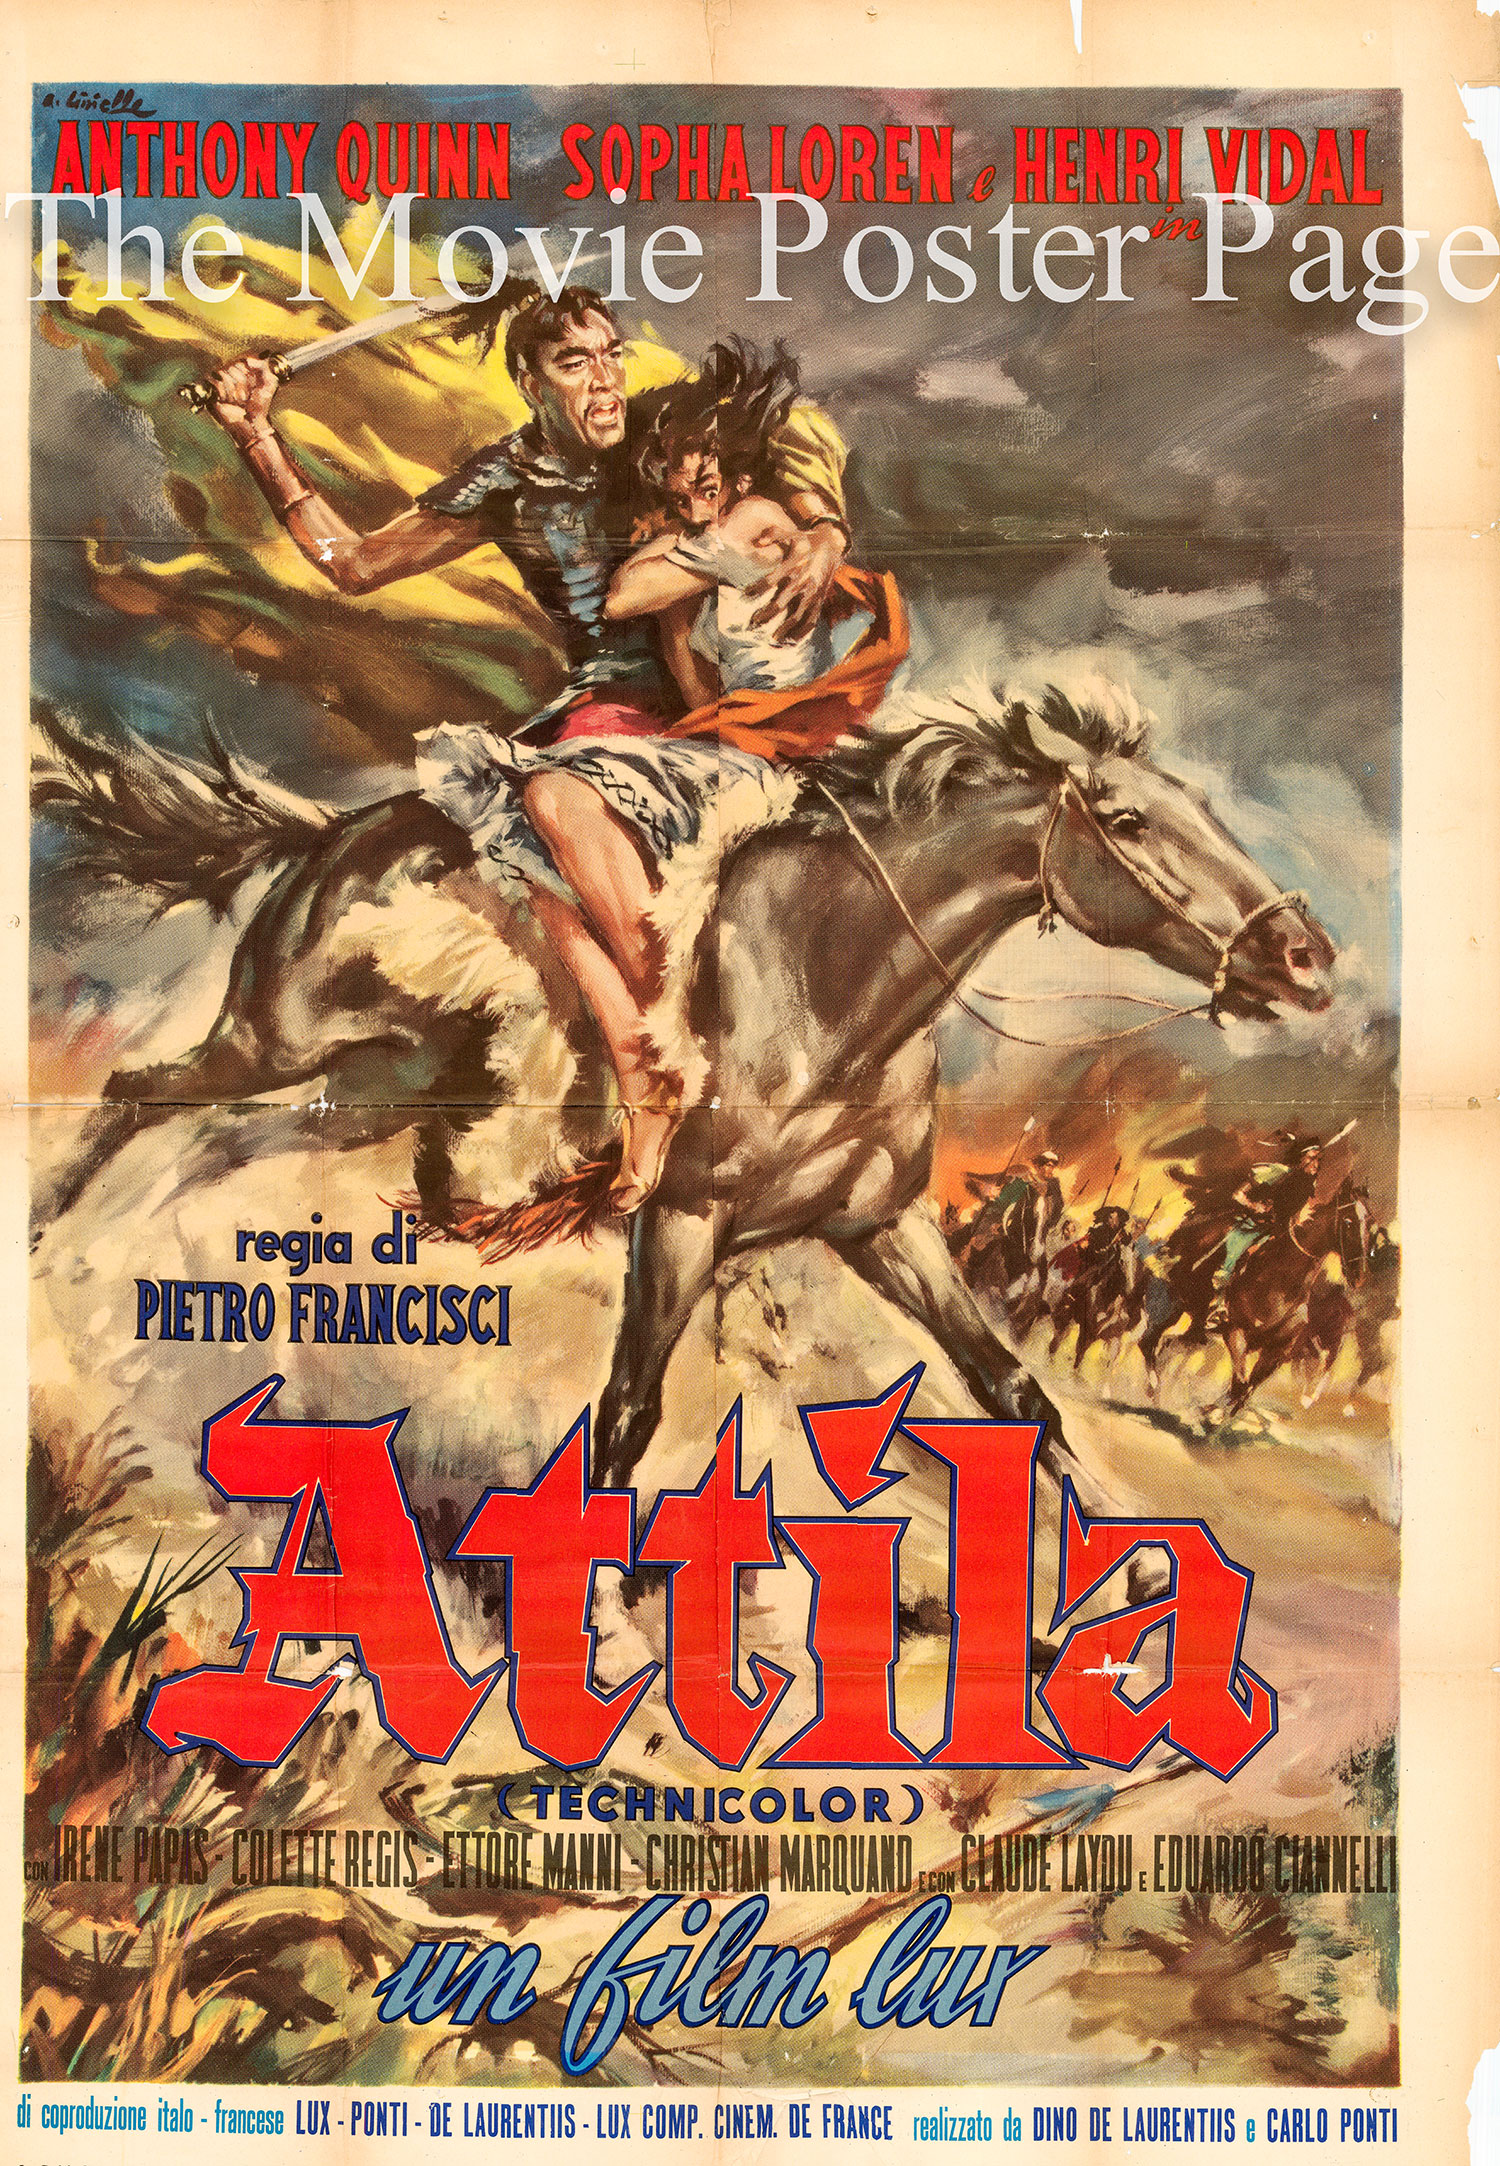 Pictured is an Italian two-sheet 1956 rerelease promotional poster for the 1954 Pietro Francisci film Attila starring Anthony Quinn and Sophia Loren.